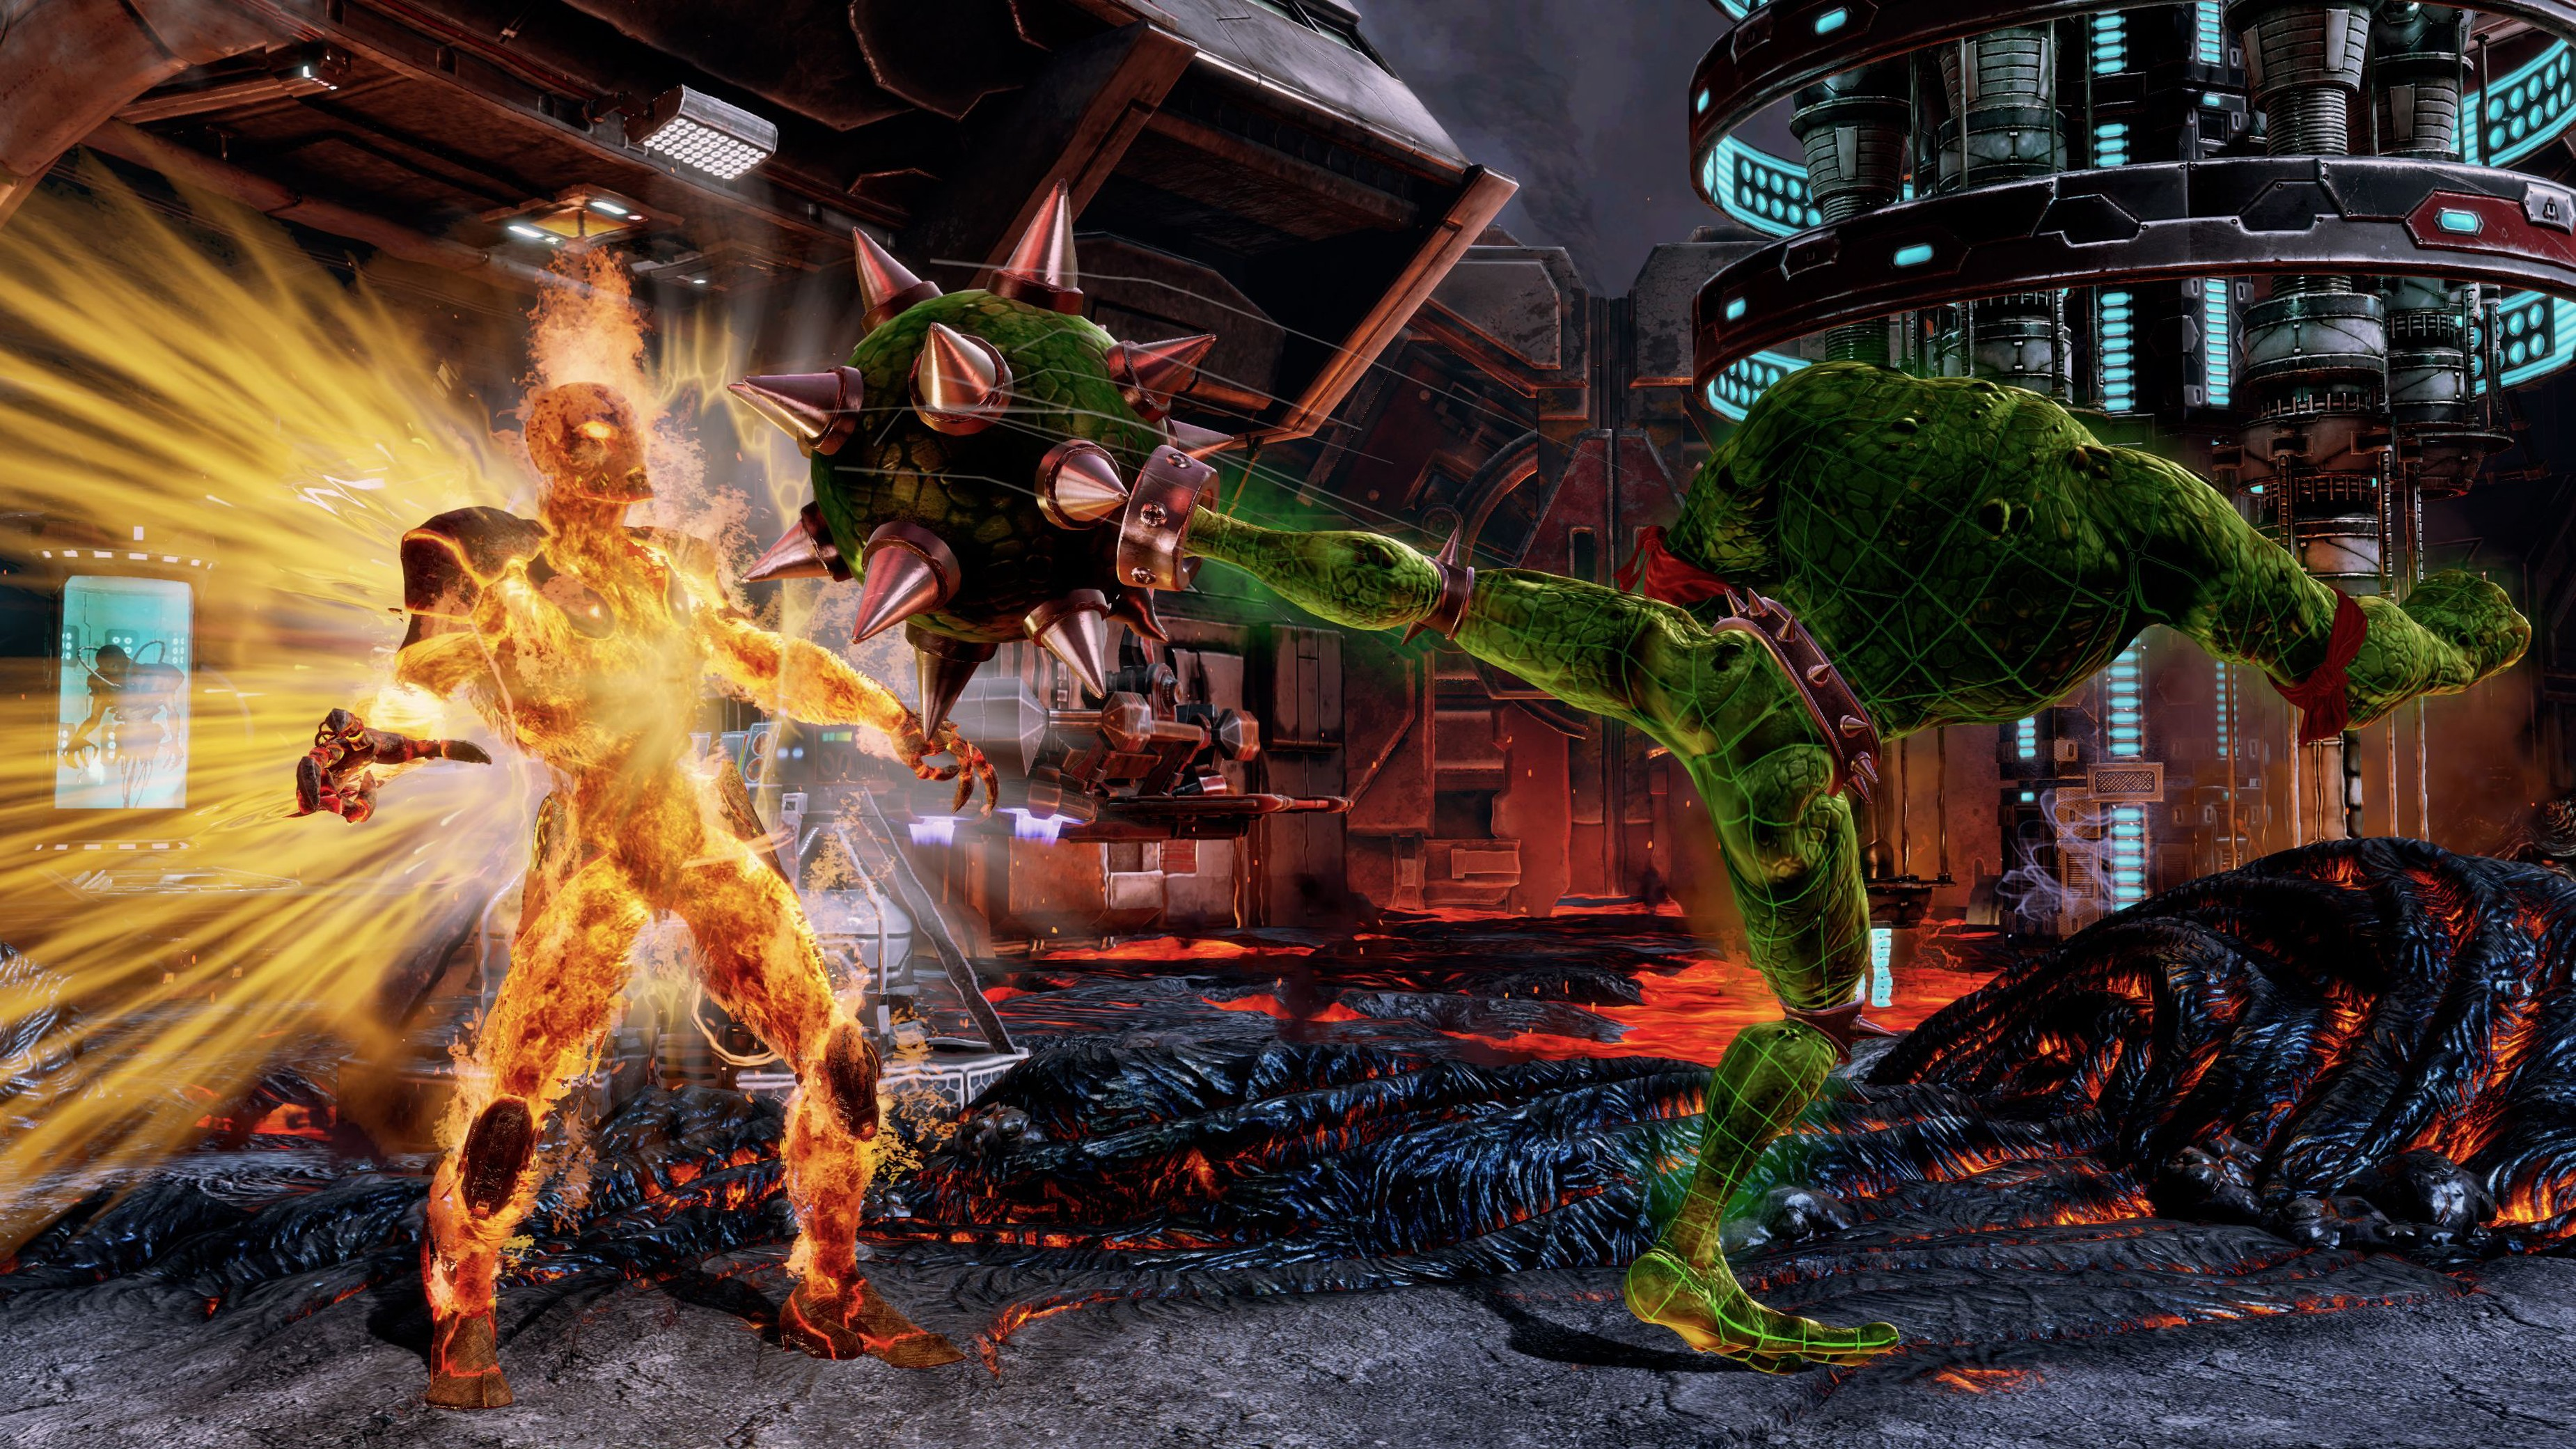 Wallpaper killer instinct 3 best games 2016 fighting pc for Terengganu home wallpaper 2016